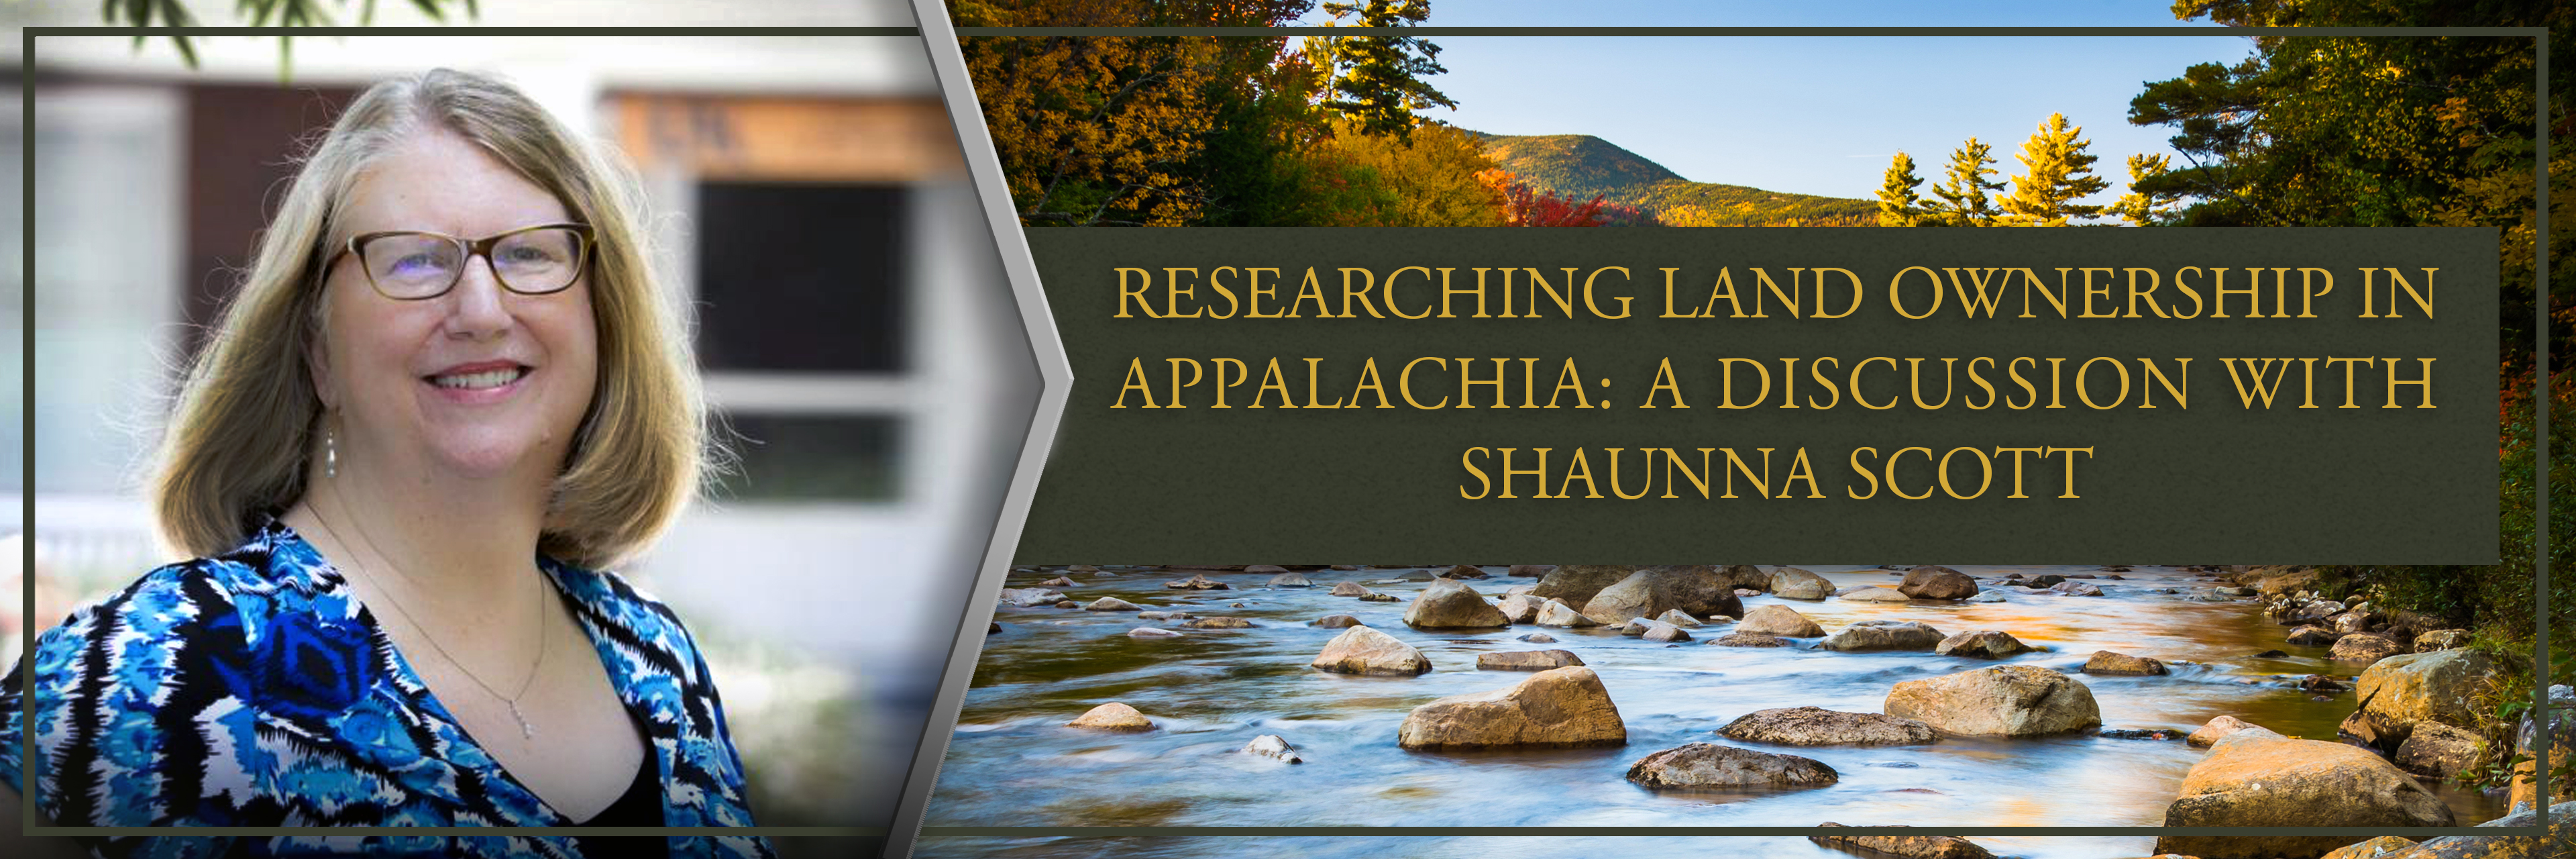 Appalachian Land Ownership Study Teach-In 2017: An ...